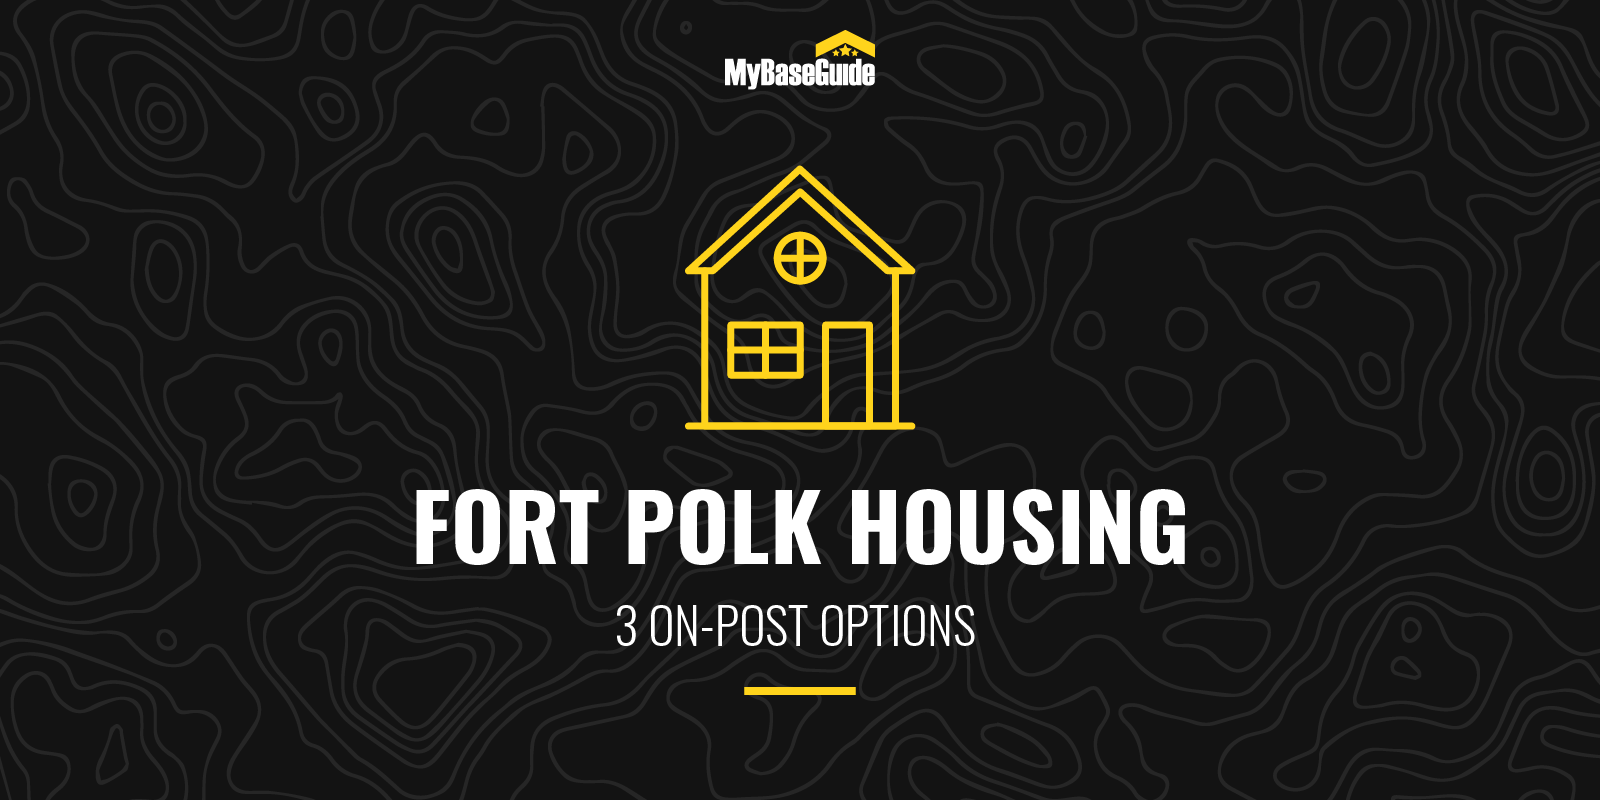 Fort Polk Housing: 3 On Post Options